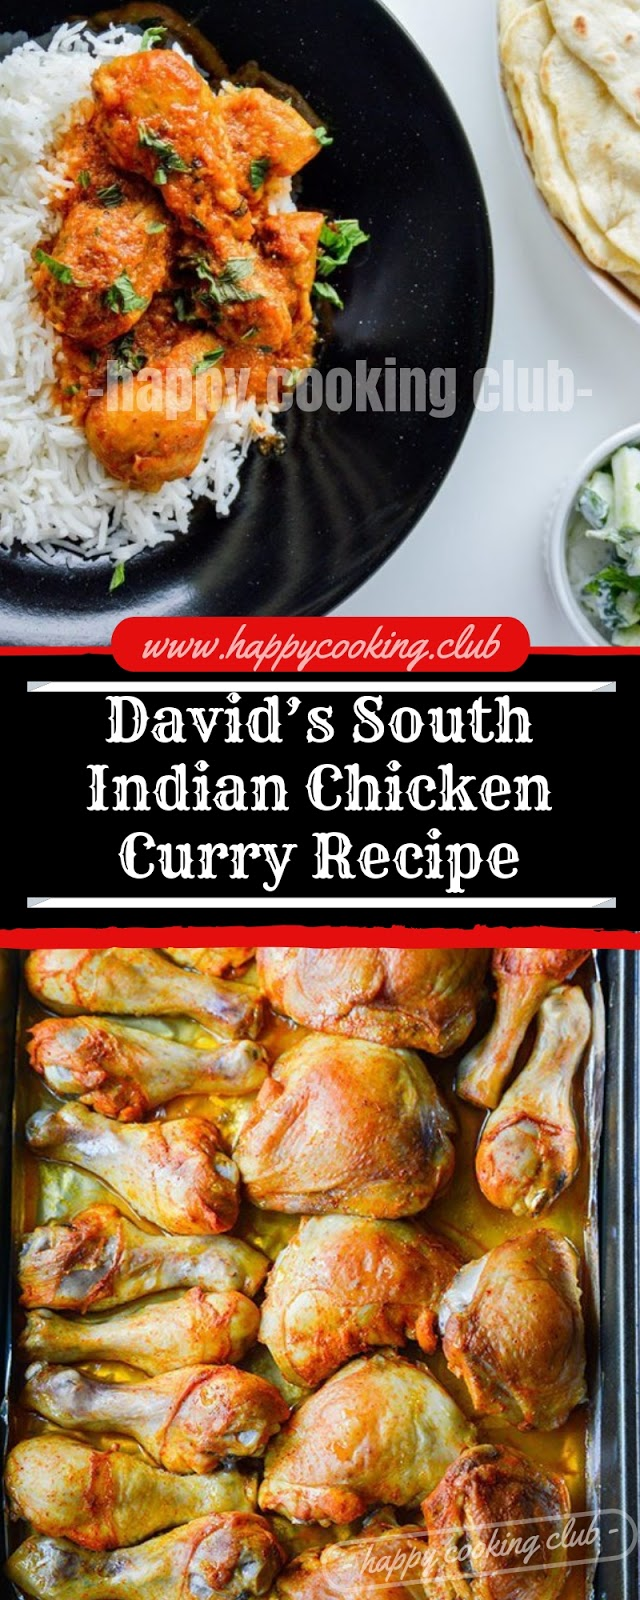 David's South Indian Chicken Curry Recipe